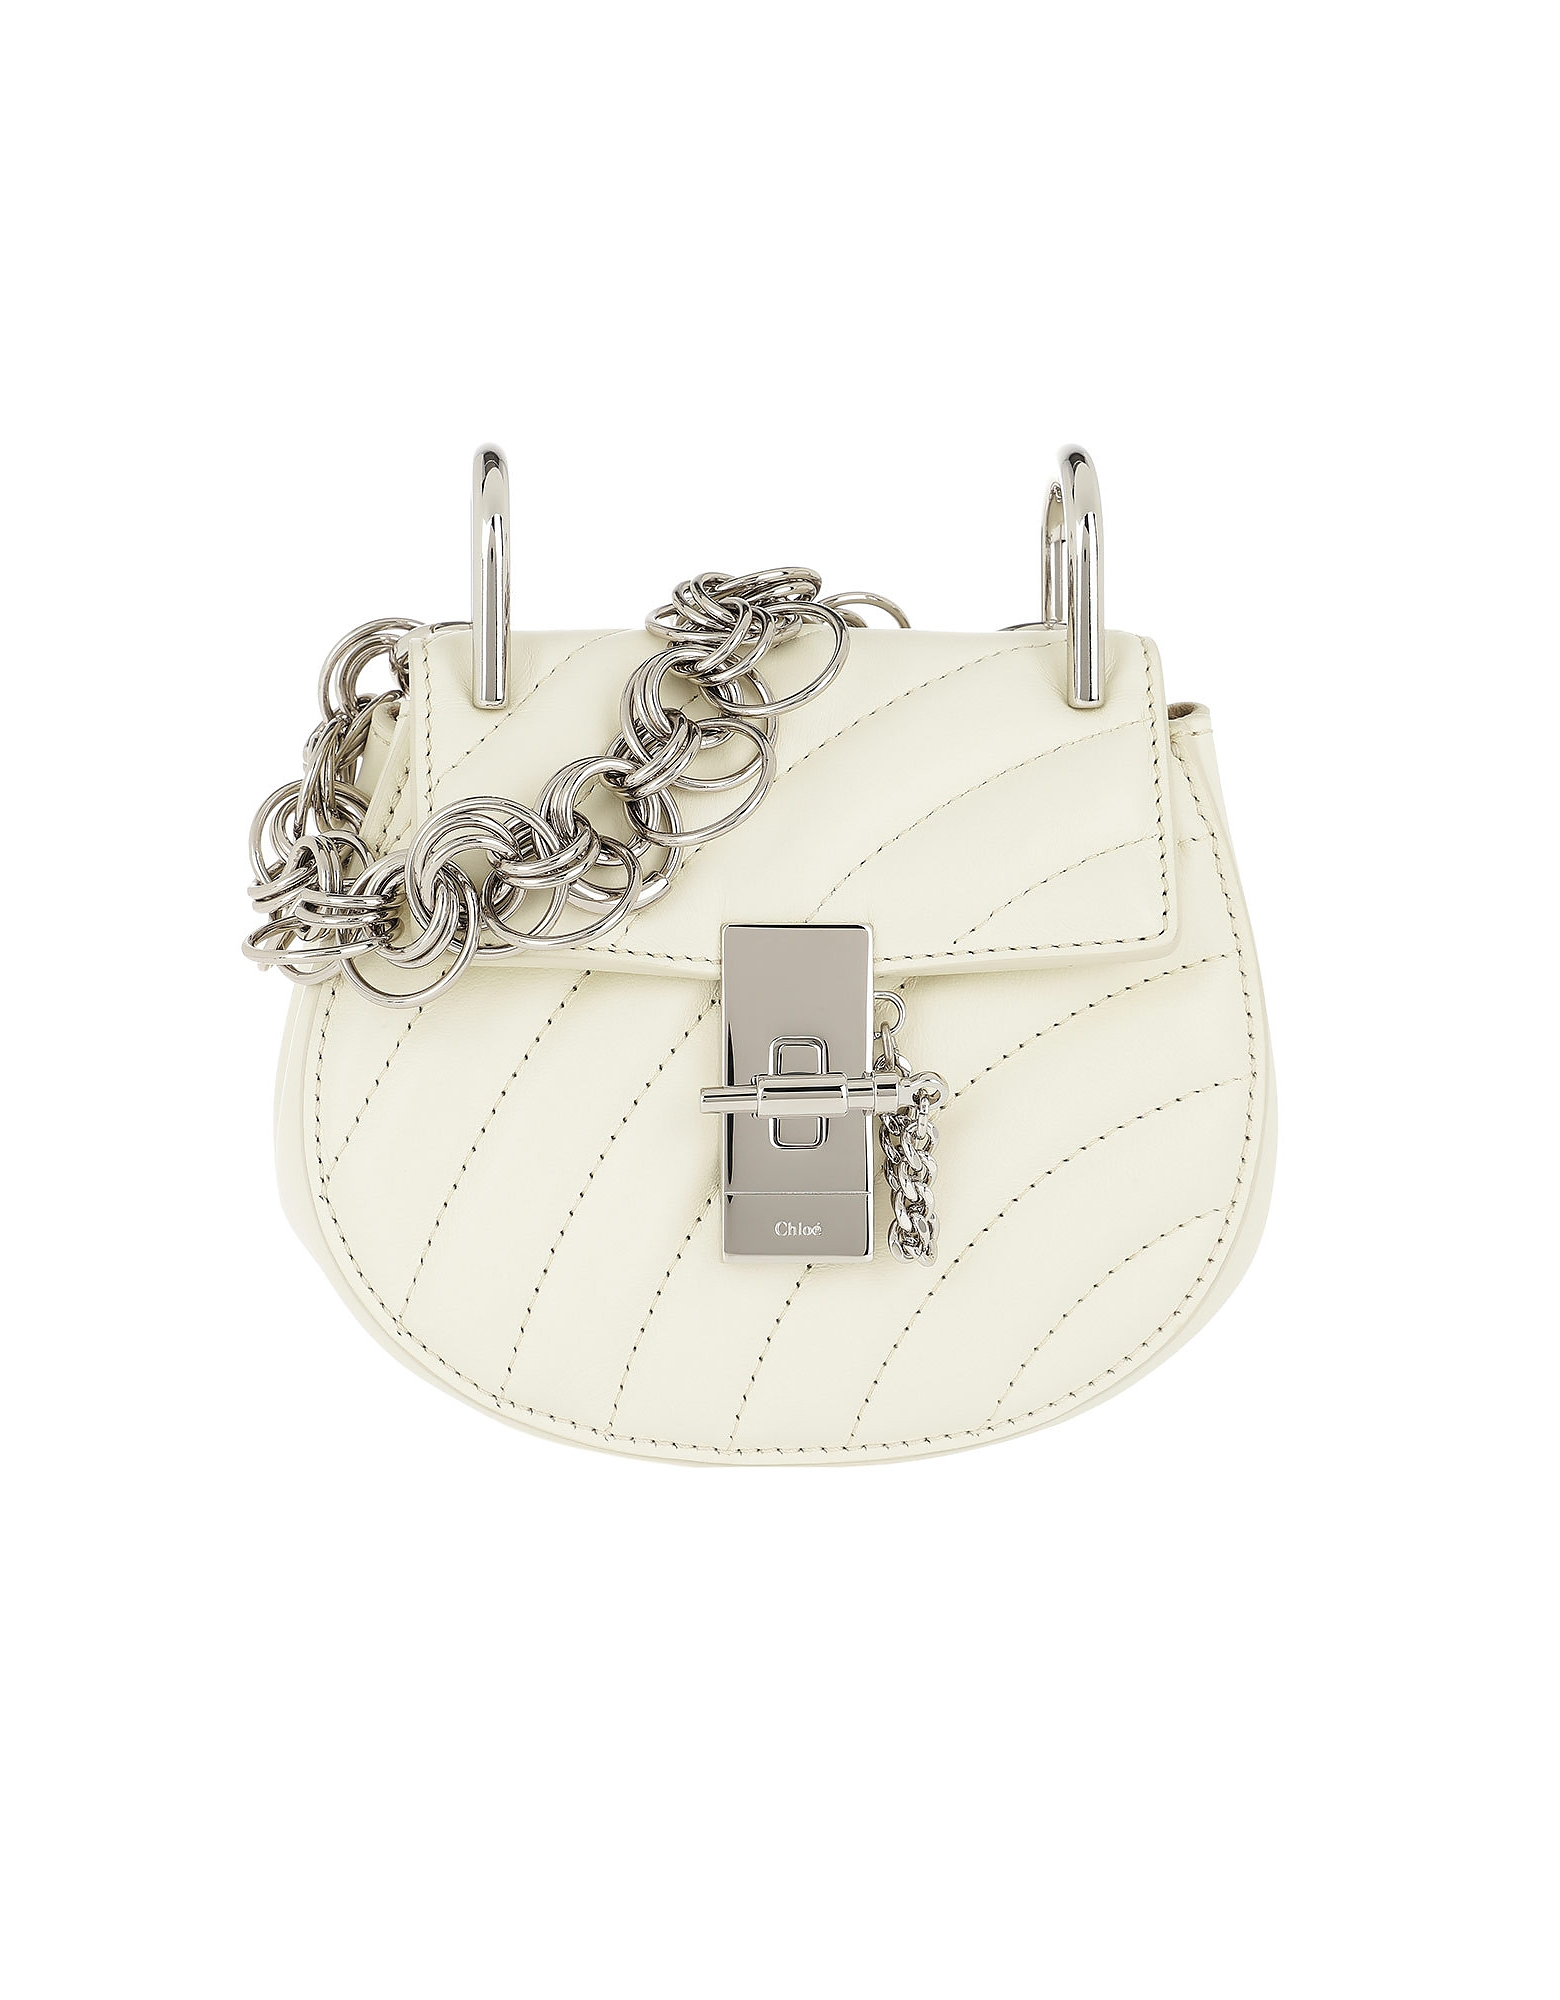 Drew Bijou Nano Quilted Leather Natural White